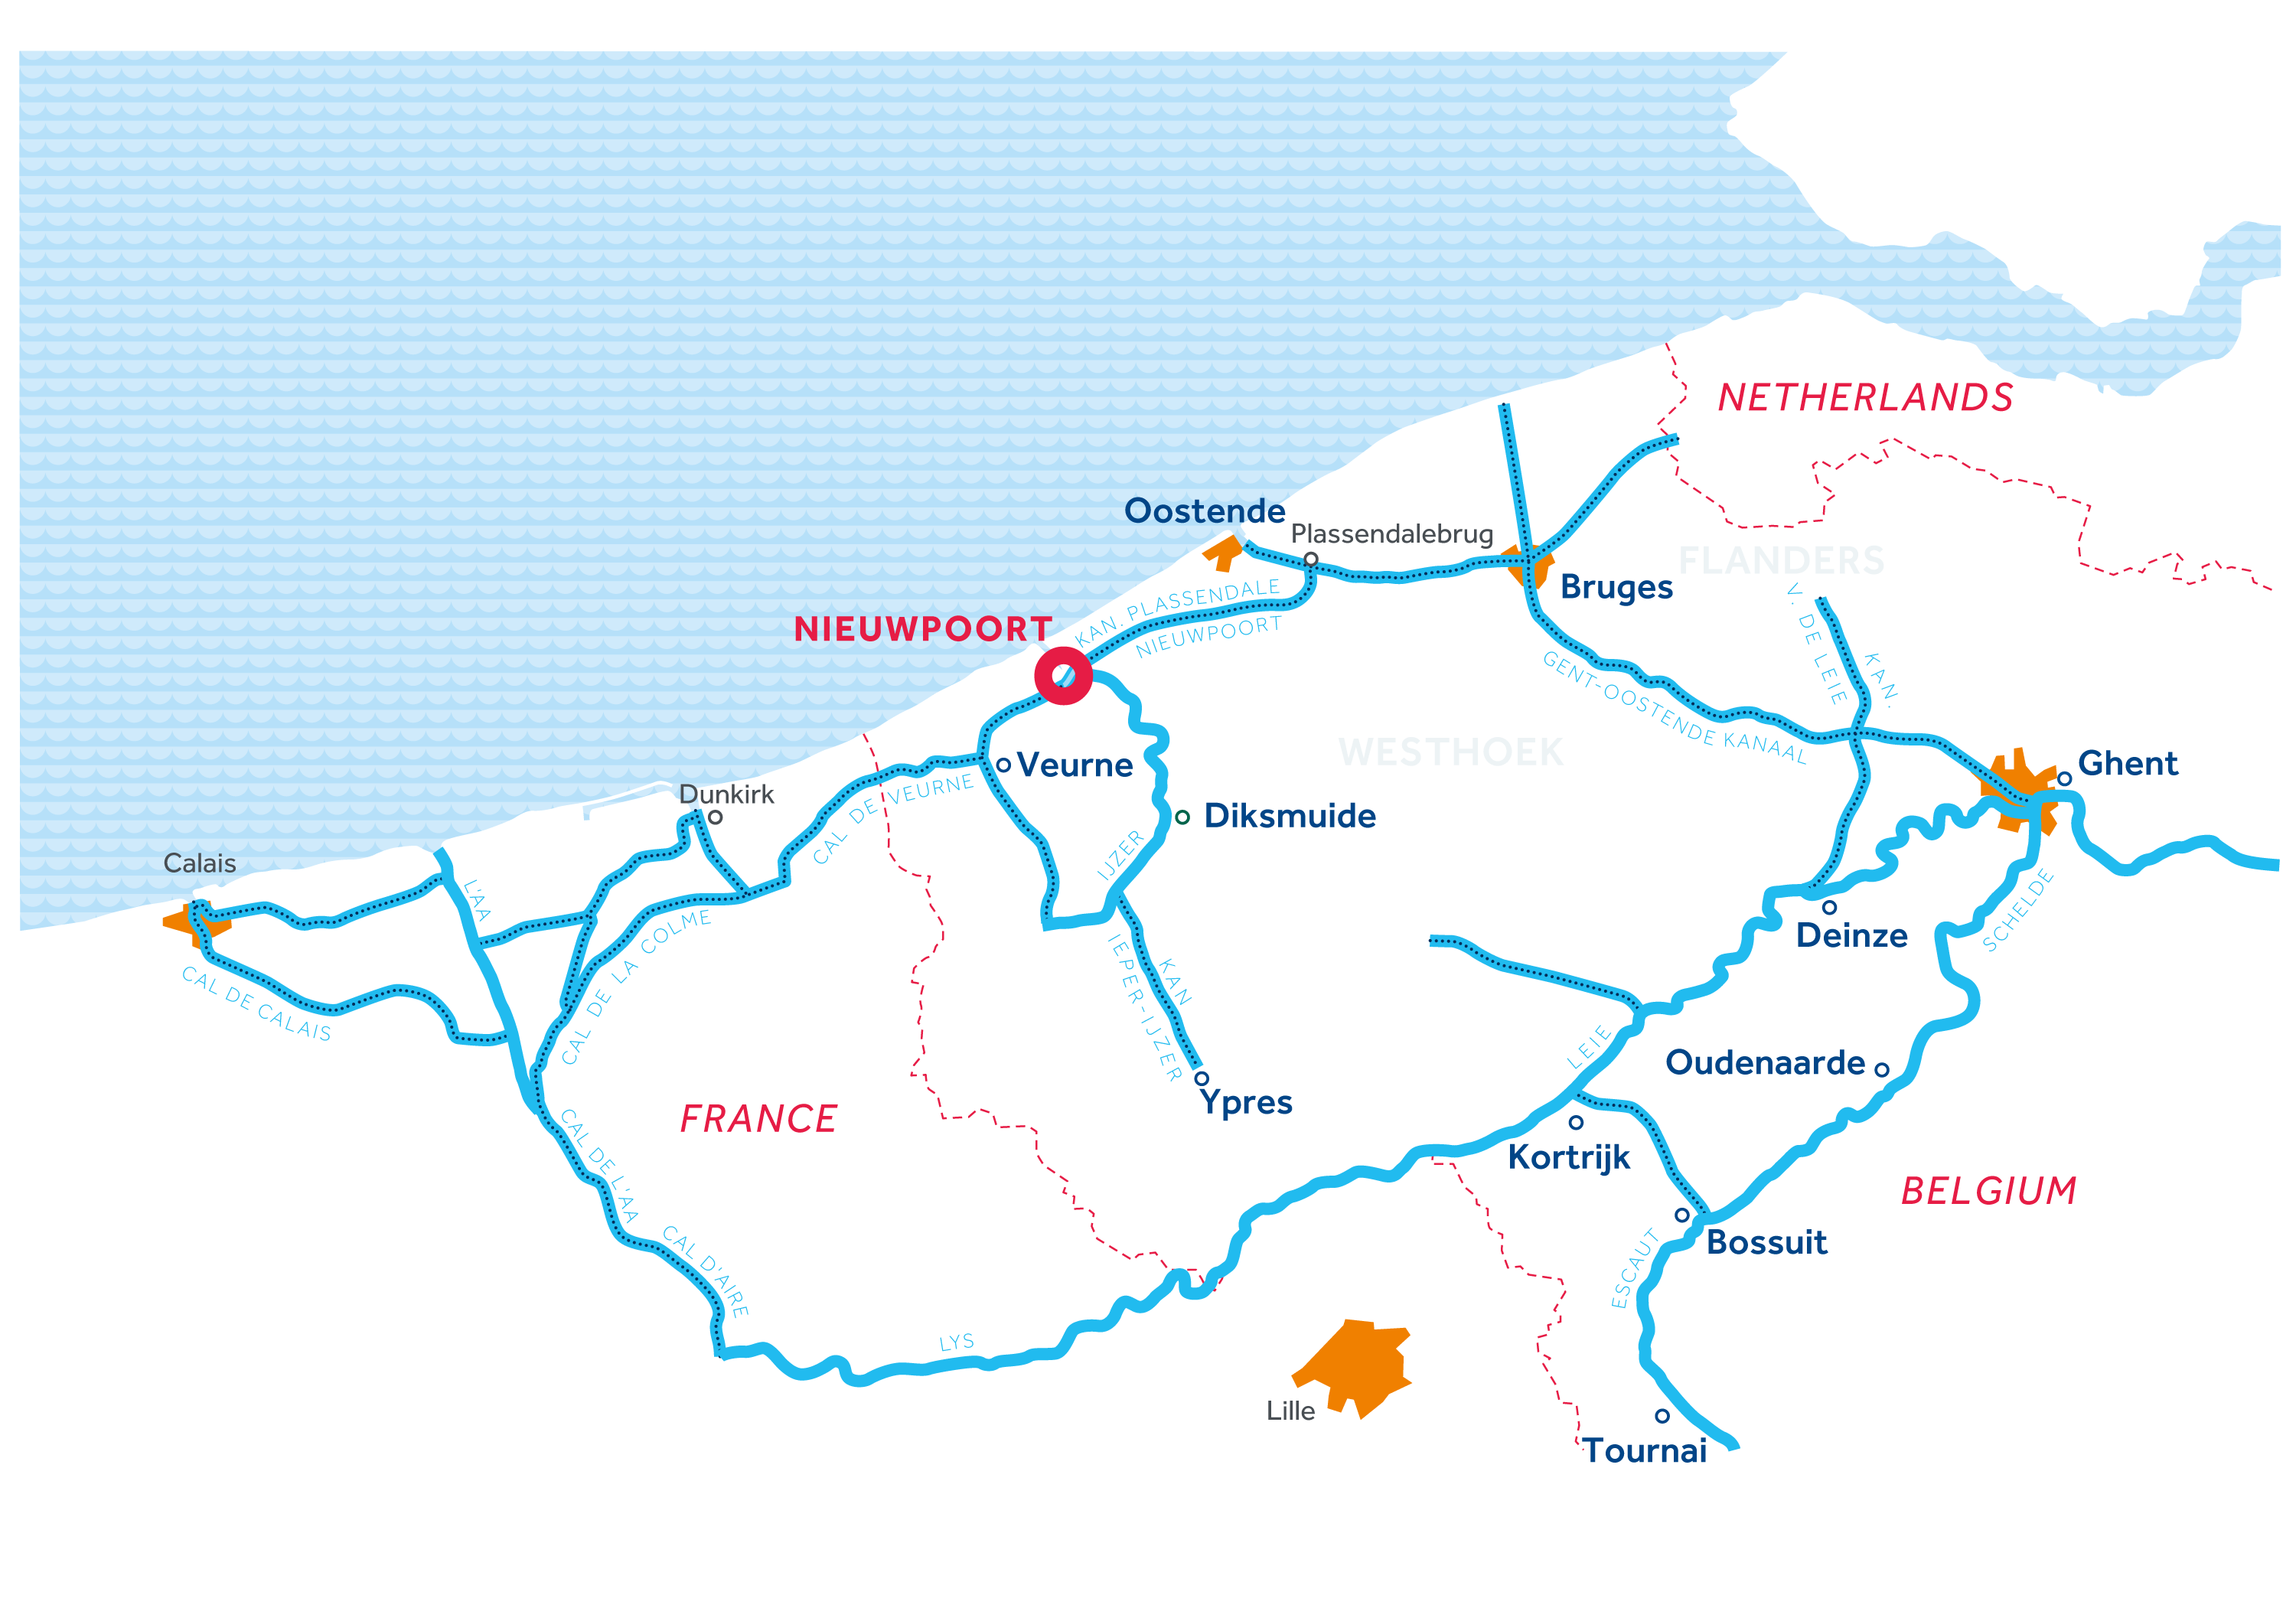 Flanders Region map